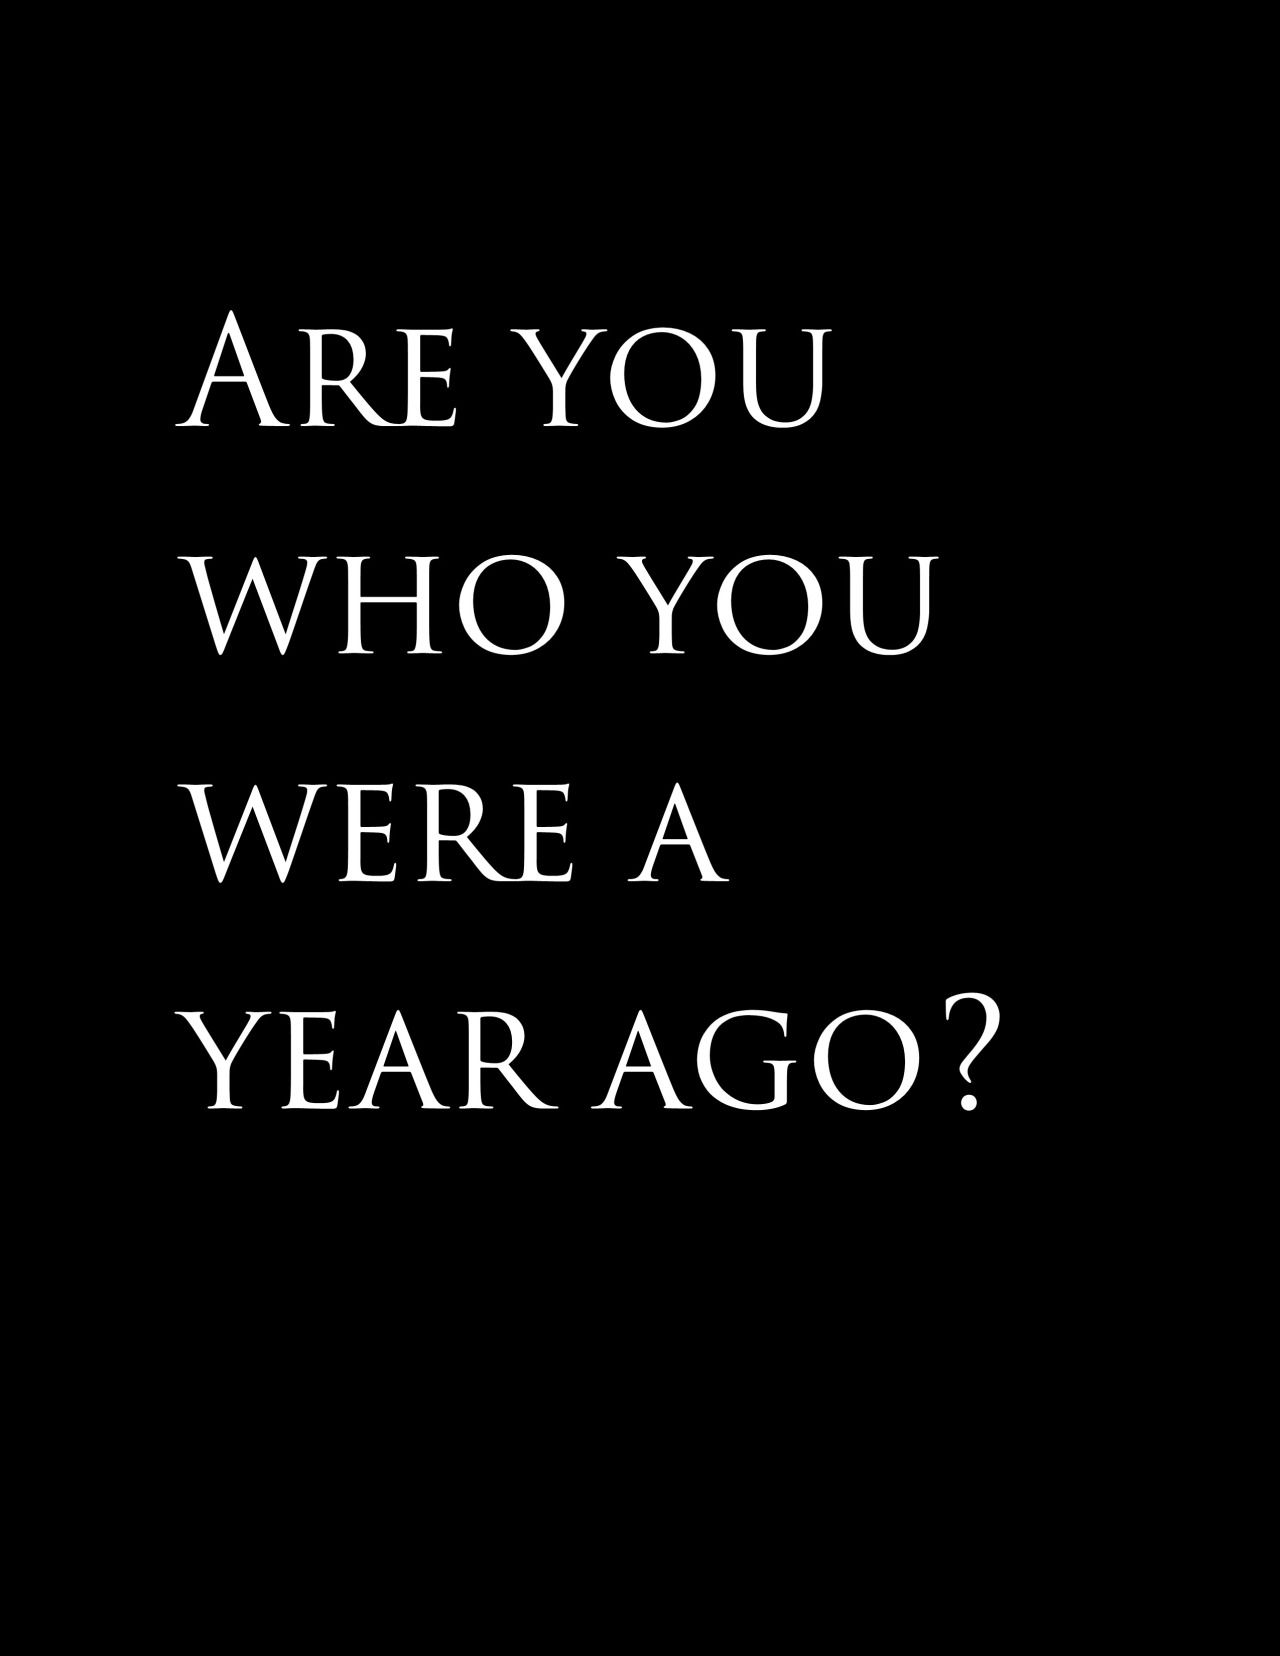 This is an interesting question to contemplate on a Friday afternoon. Are you who you were a year ago? #motivation #quotes #wisewords